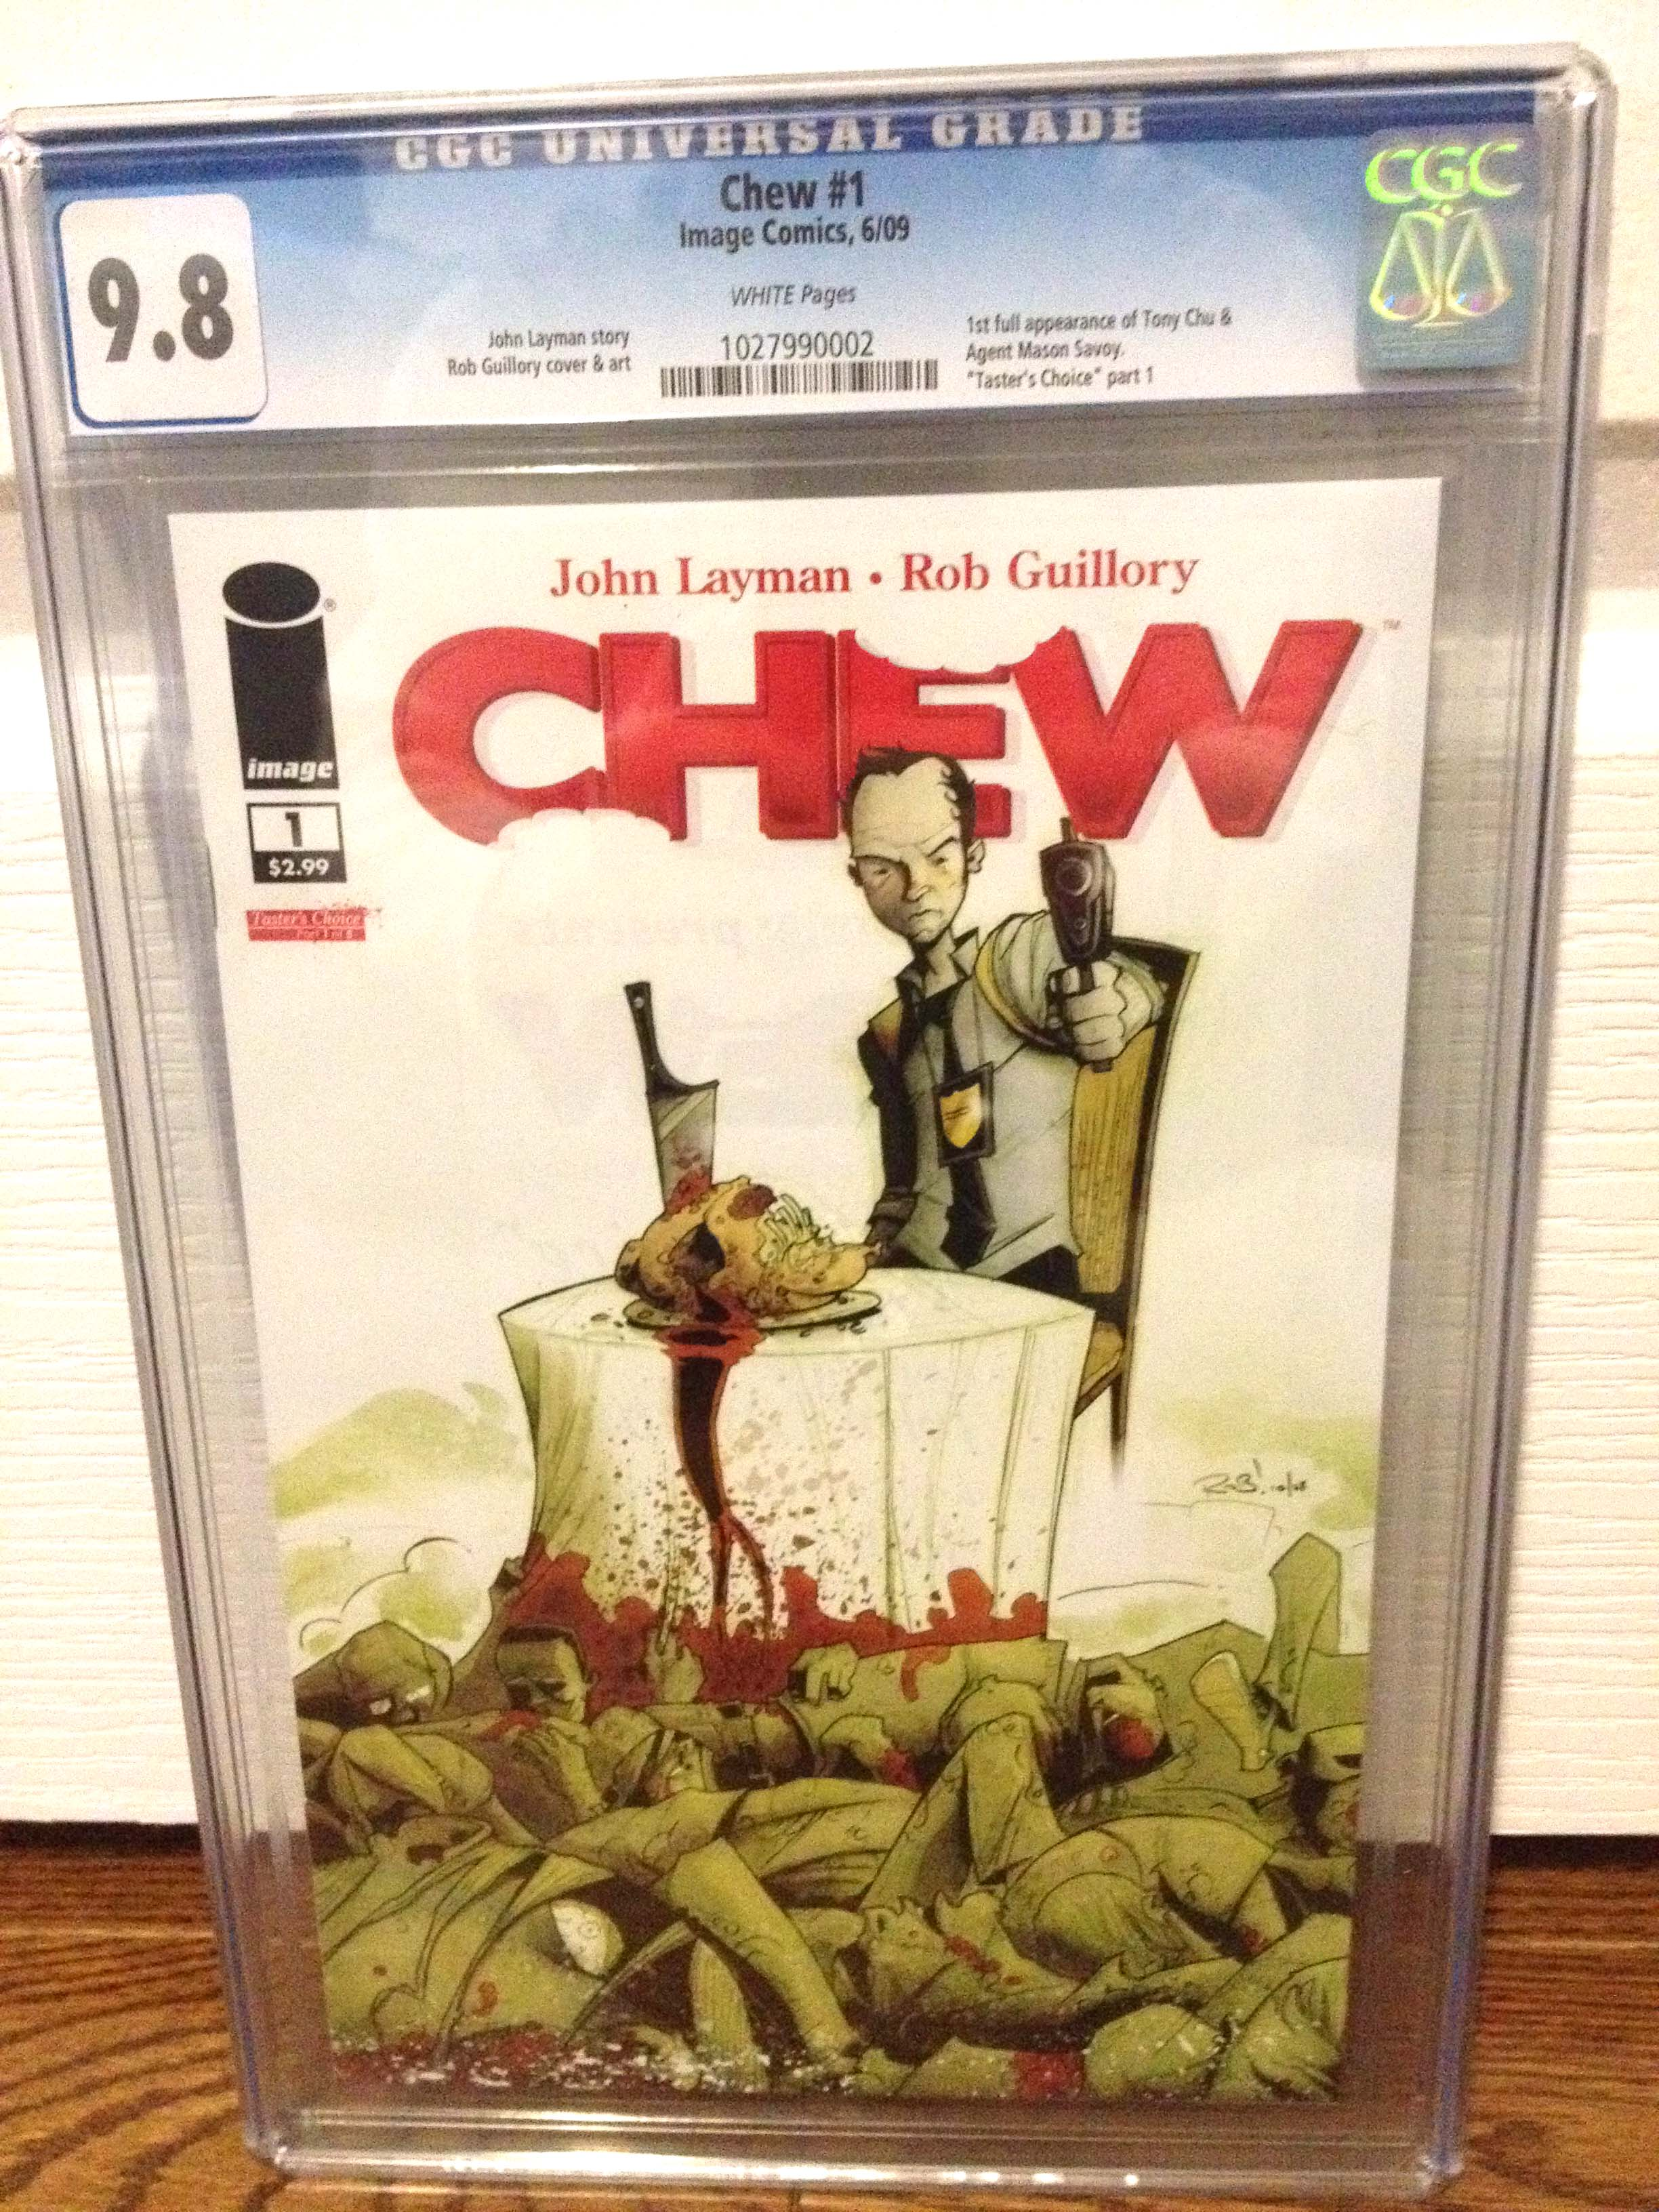 FOR SALE: Chew 1 CGC 9.8 WHITE pages UPCOMING CABLE TV SERIES on SHOWTIME